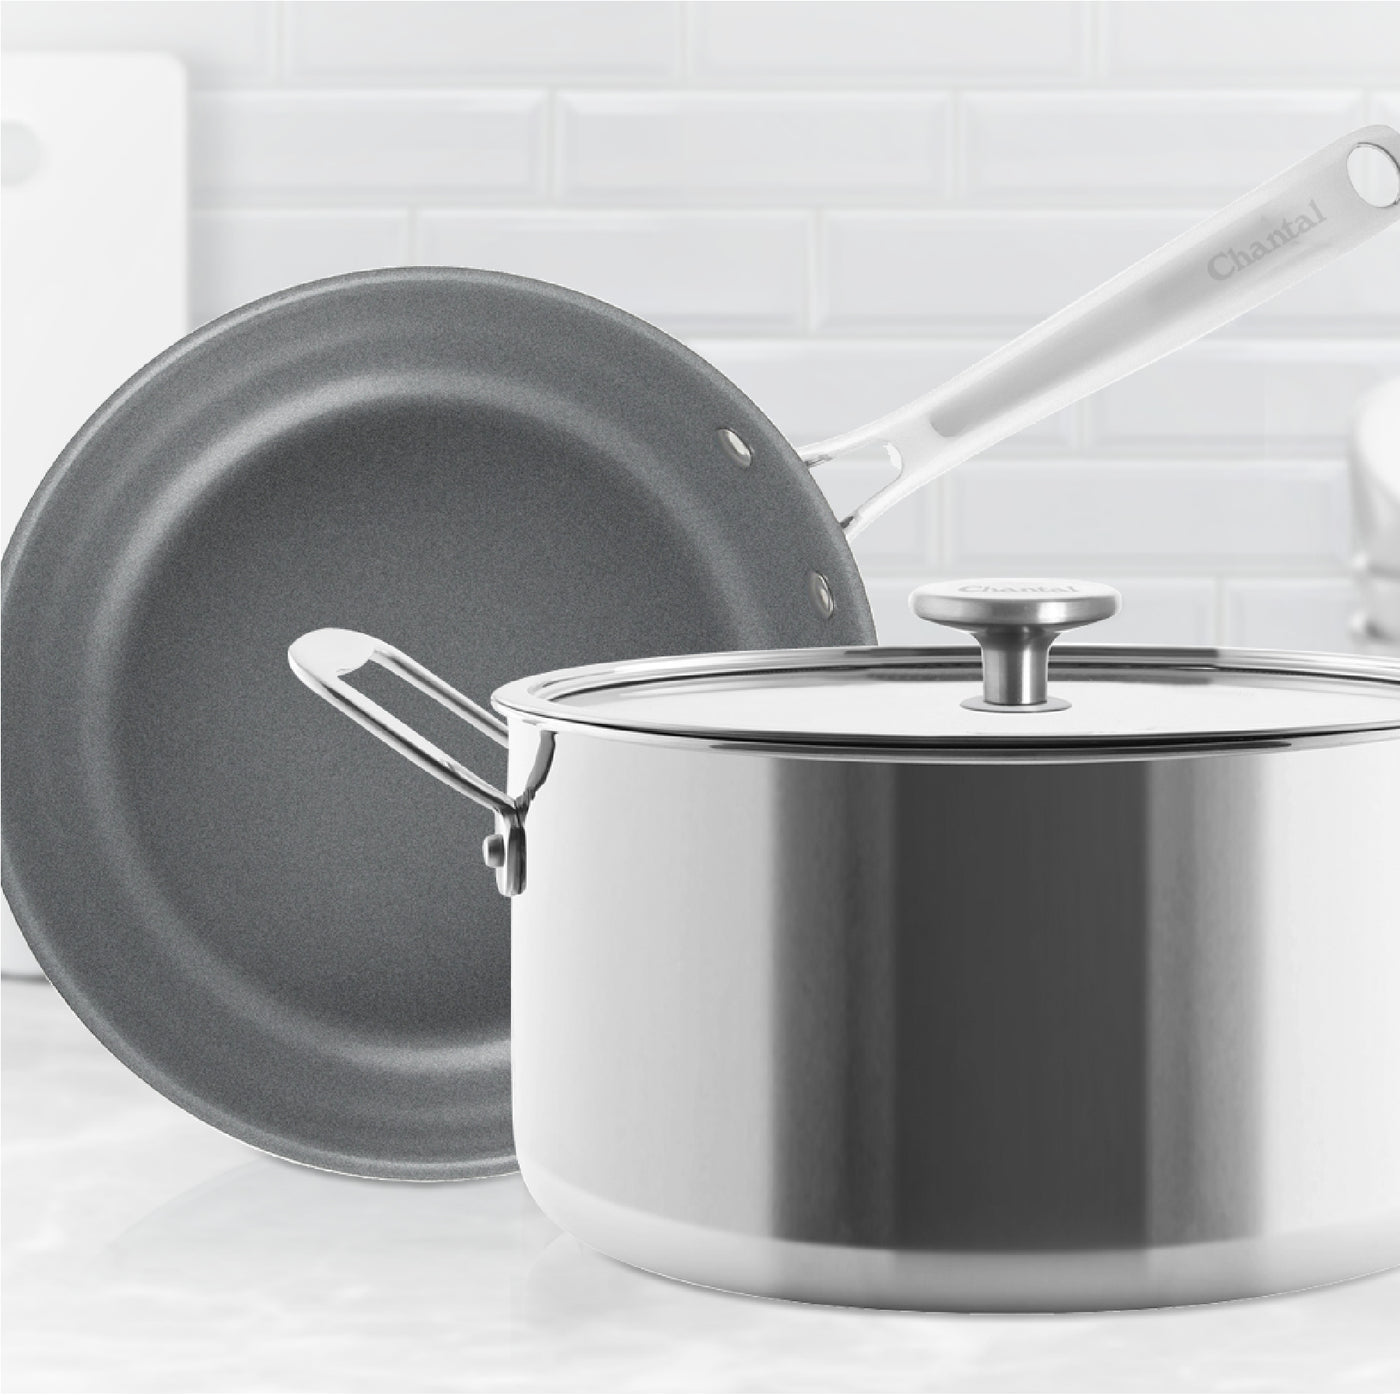 3.clad stainless steel cookware collection